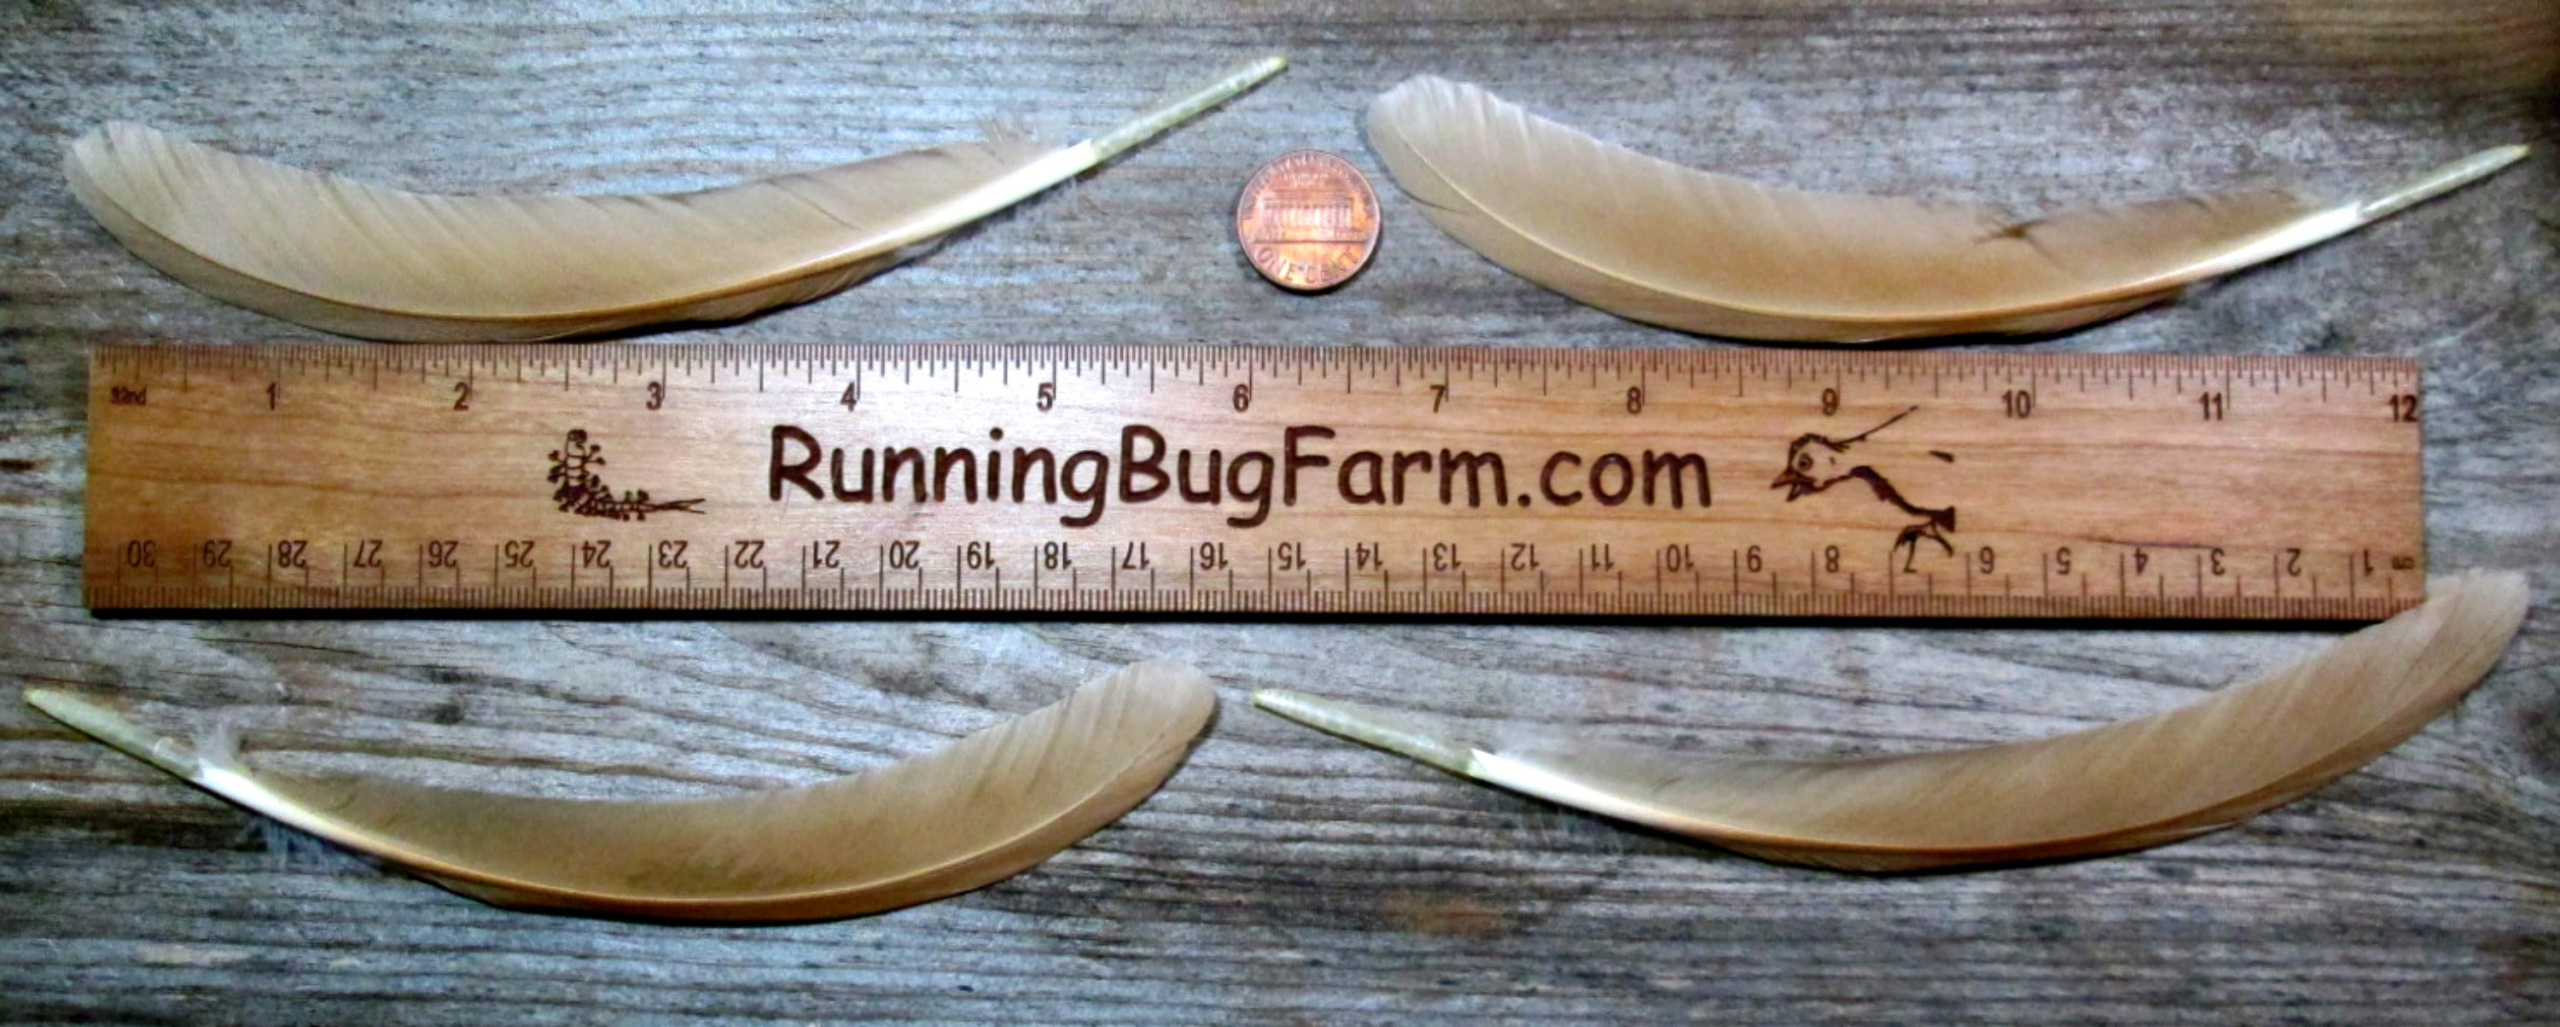 Buff Primary Right And Left Wing Feathers For Crafts From